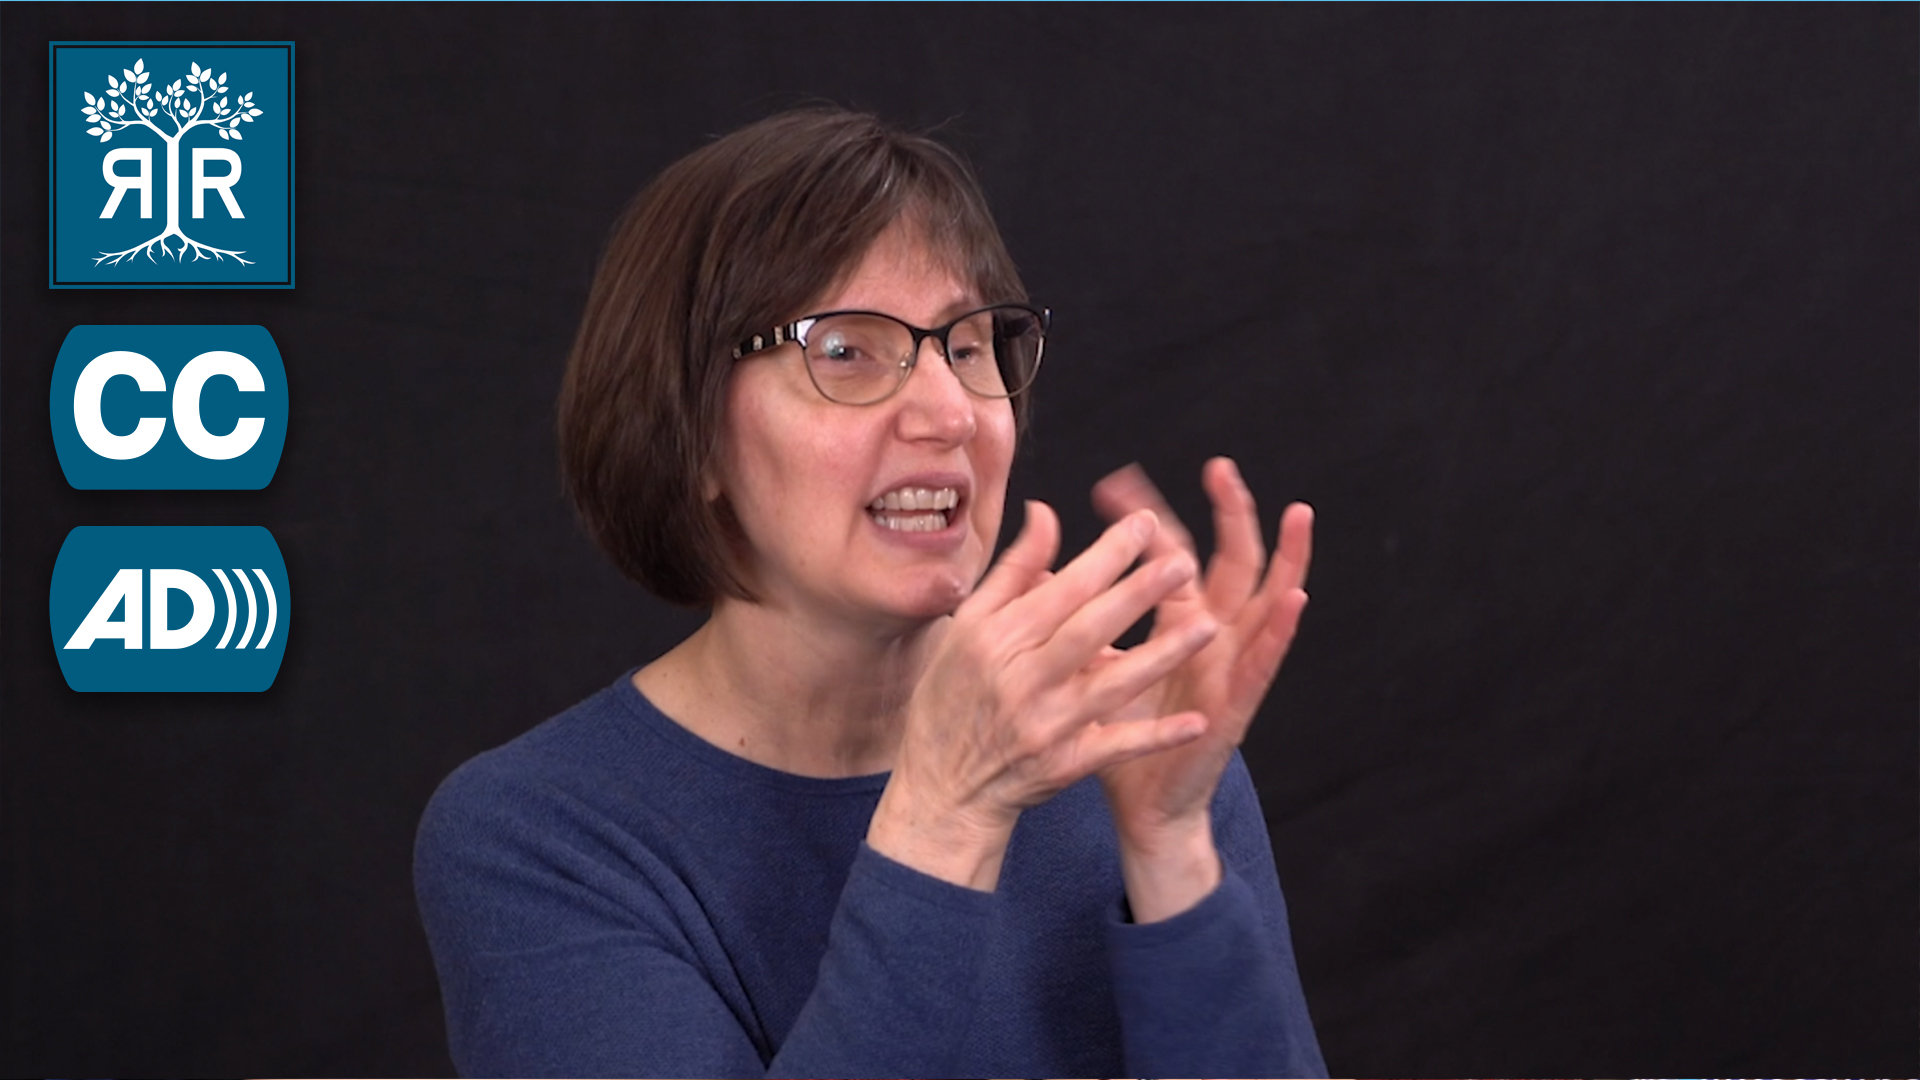 Debra, a white woman with short brown hair and glasses, signs to camera.